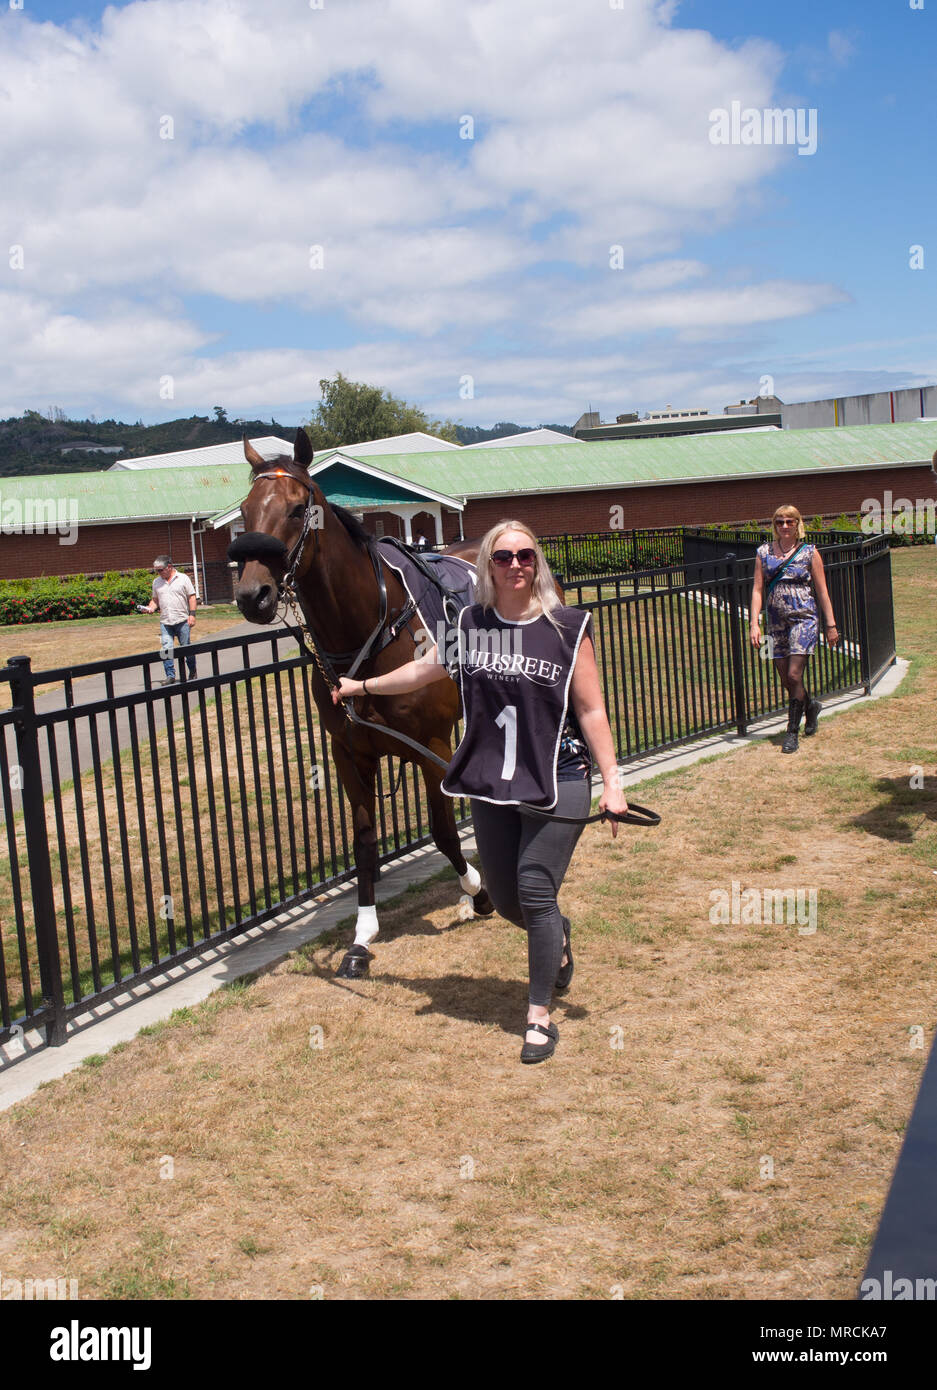 Leading Out A Horse At The Horse Races - Stock Image